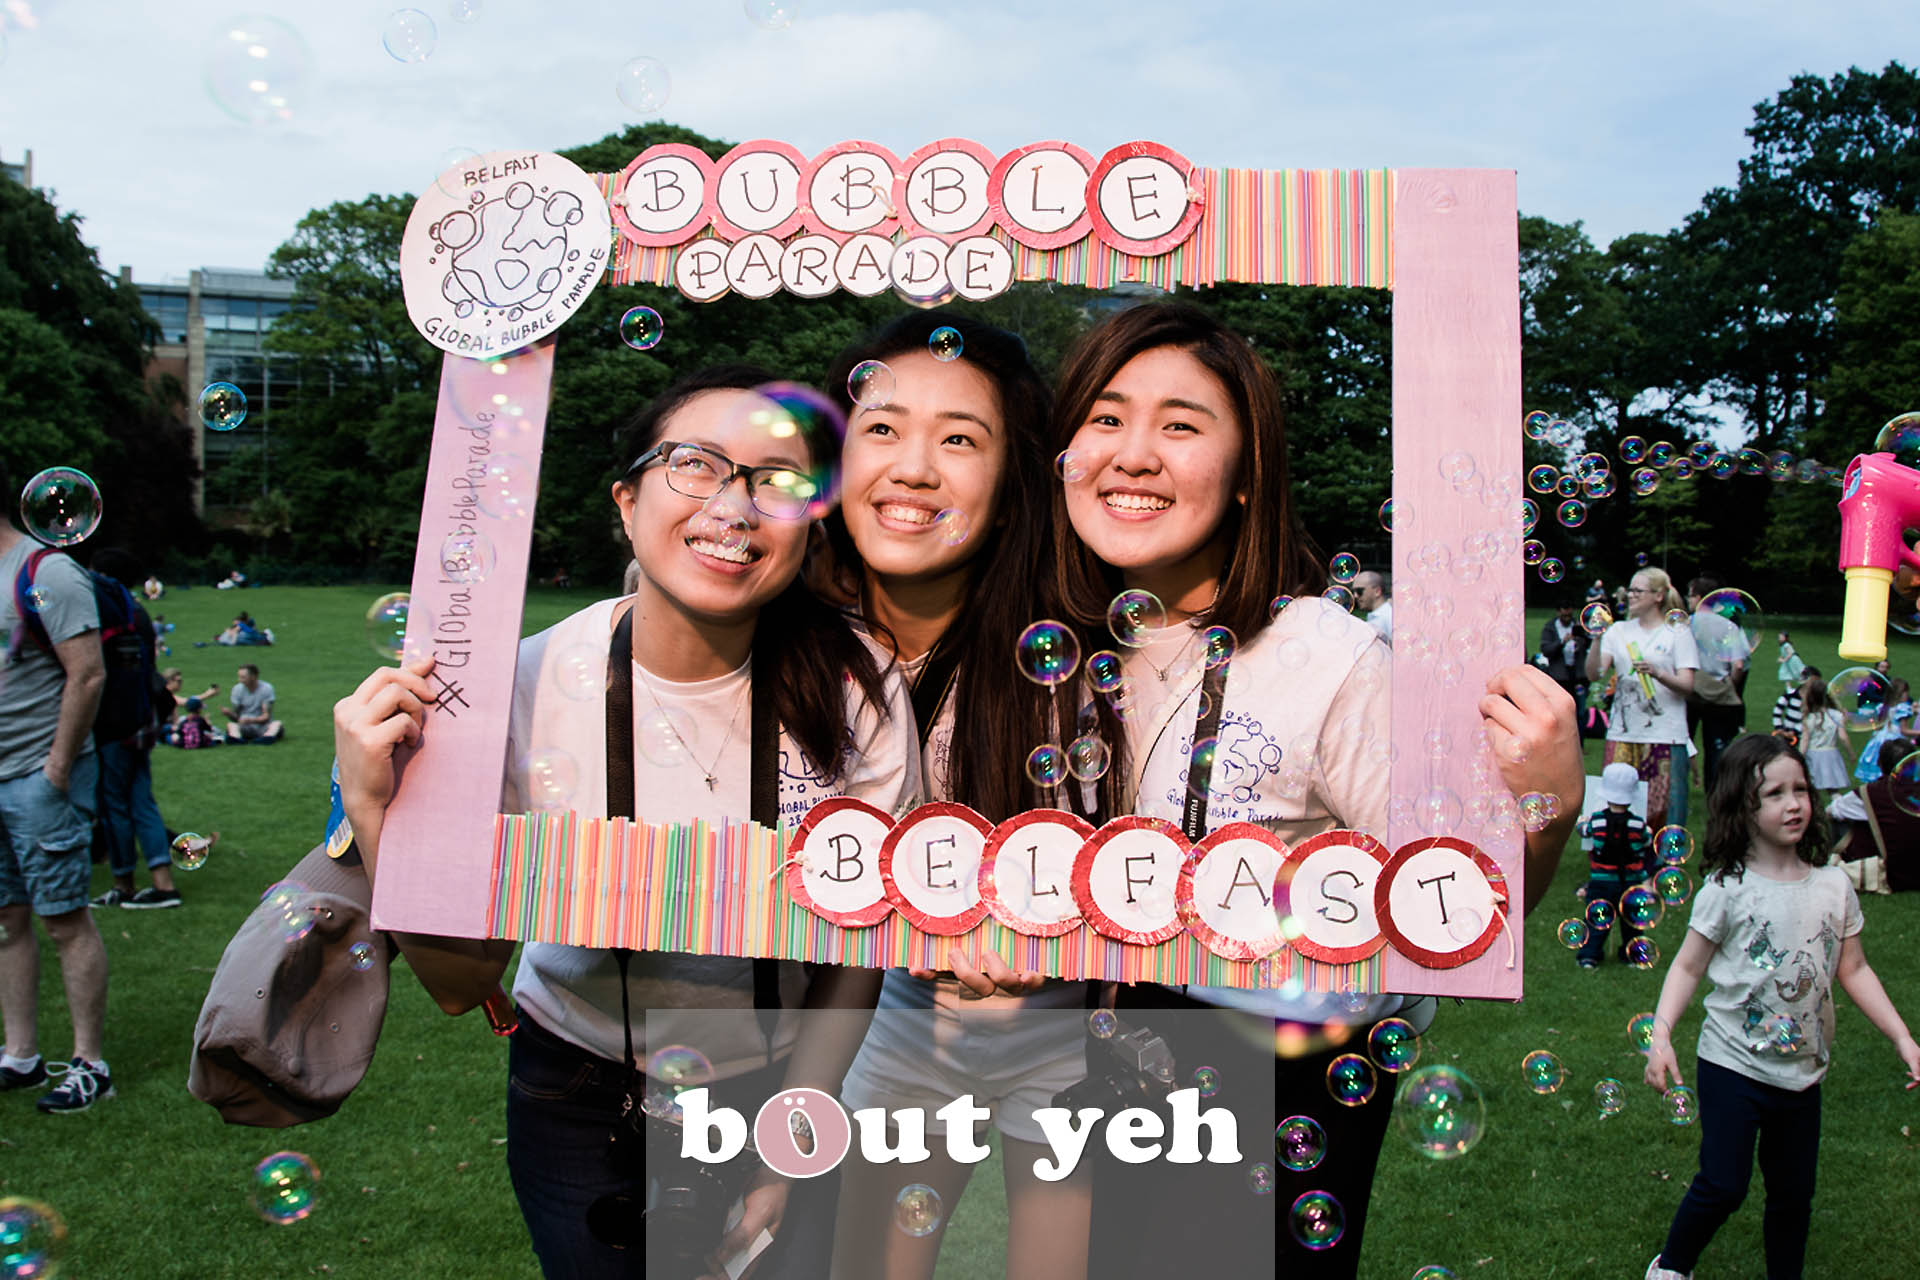 Jiexi, Liz and Gwendoline, Global Bubble Parade Belfast 2017 at Botanic Gardens, Belfast, Northern Ireland - photo 6850.